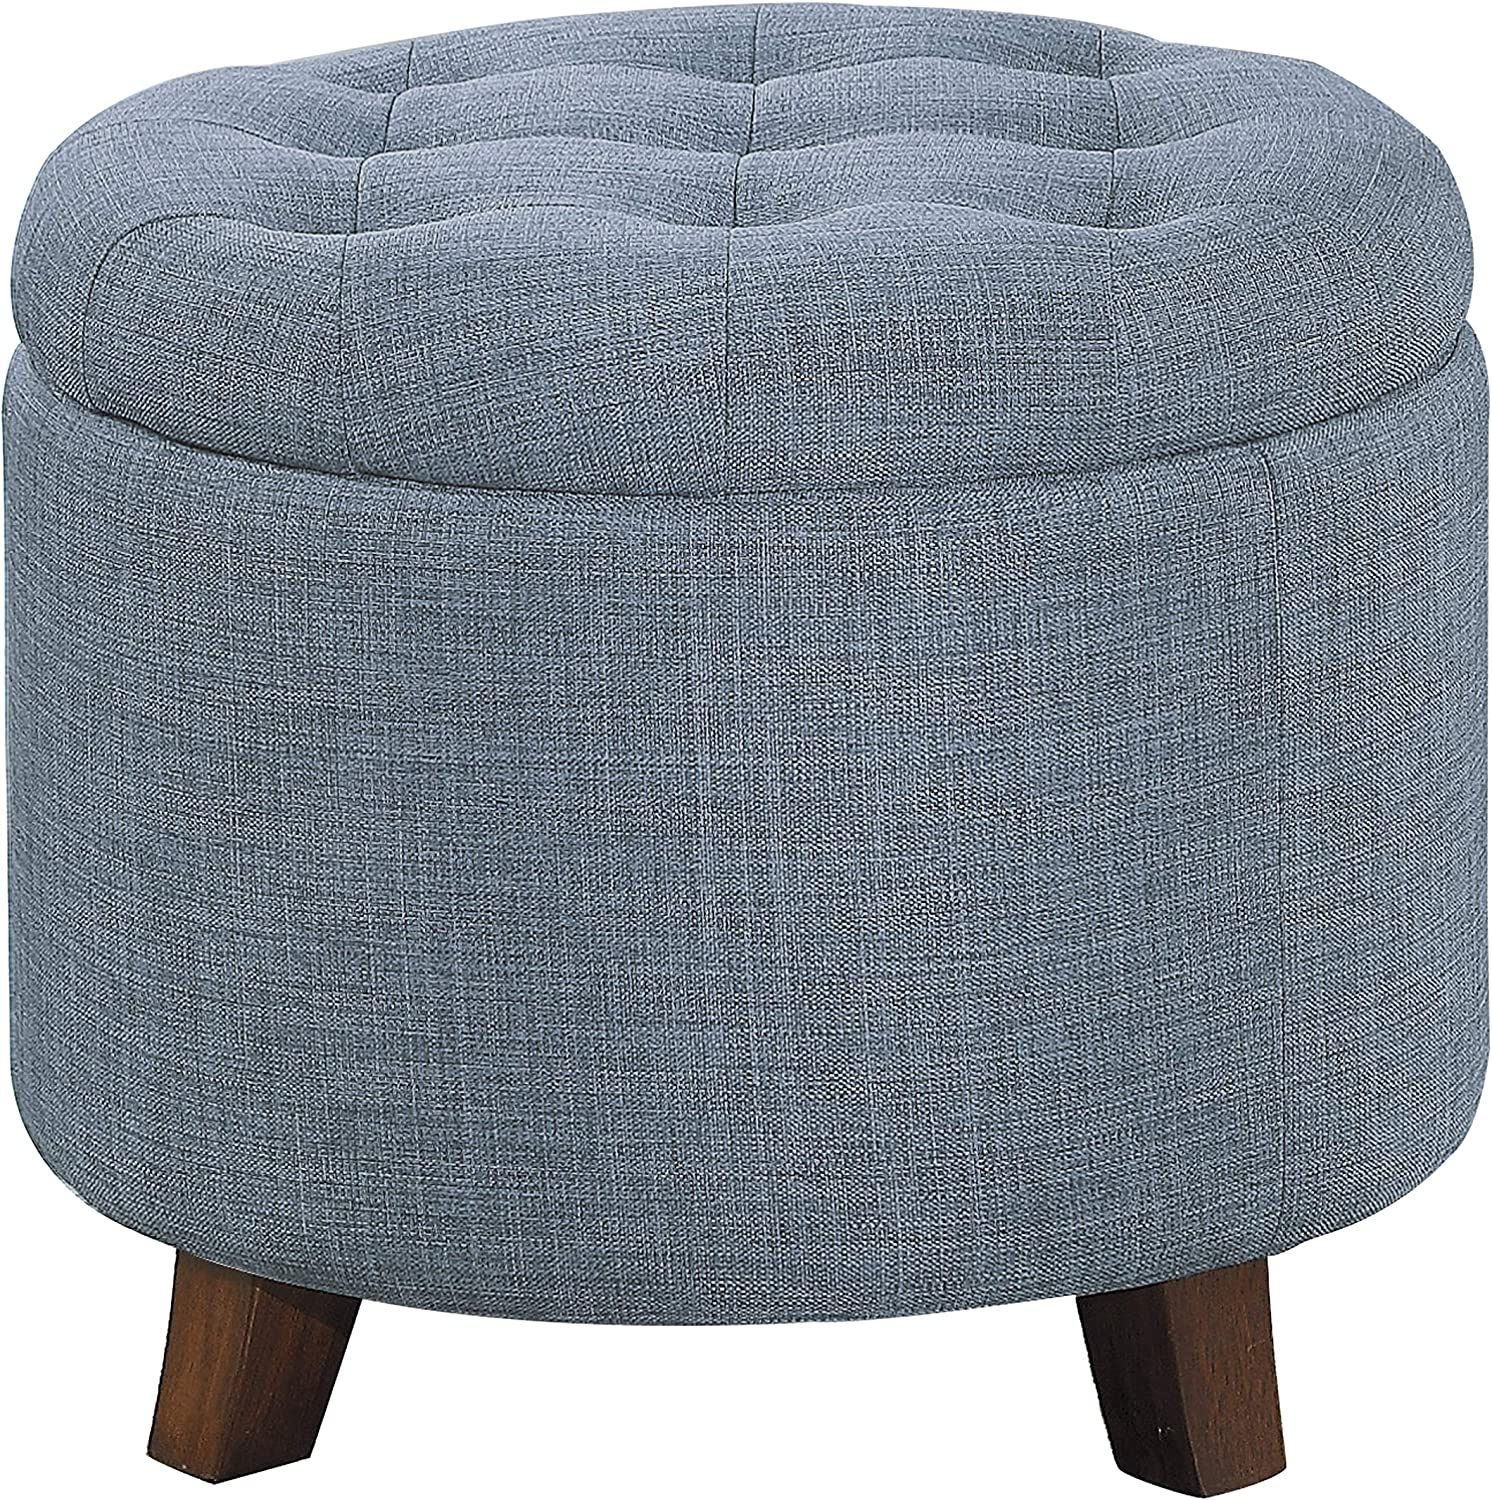 "Homelegance Cleo 20"" Round Fabric Storage Accent Ottoman, Blue"